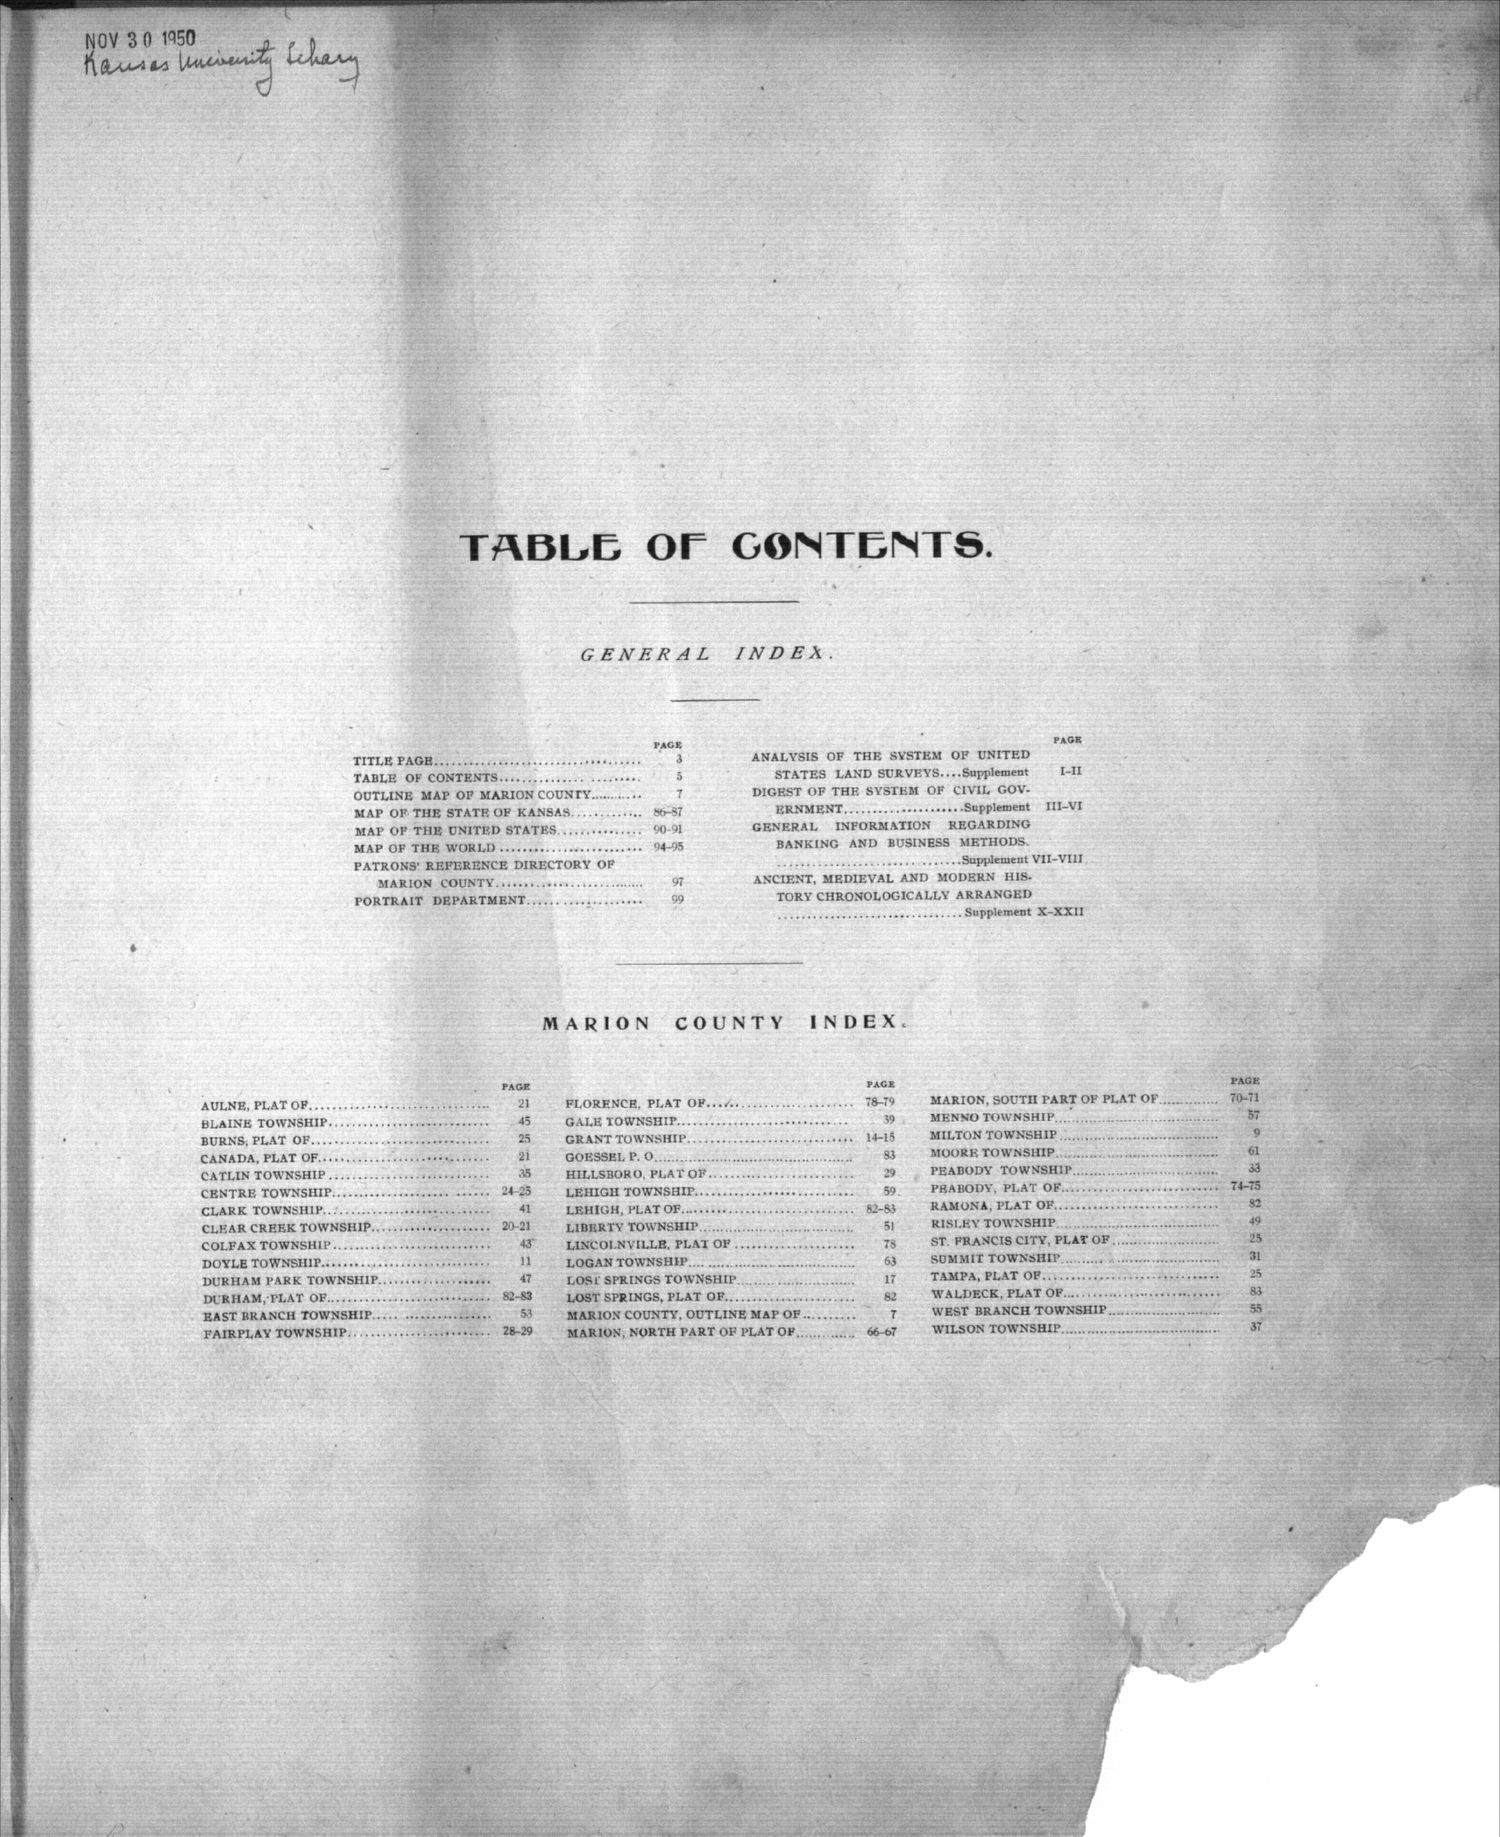 Standard atlas of Marion County, Kansas - Table of Contents